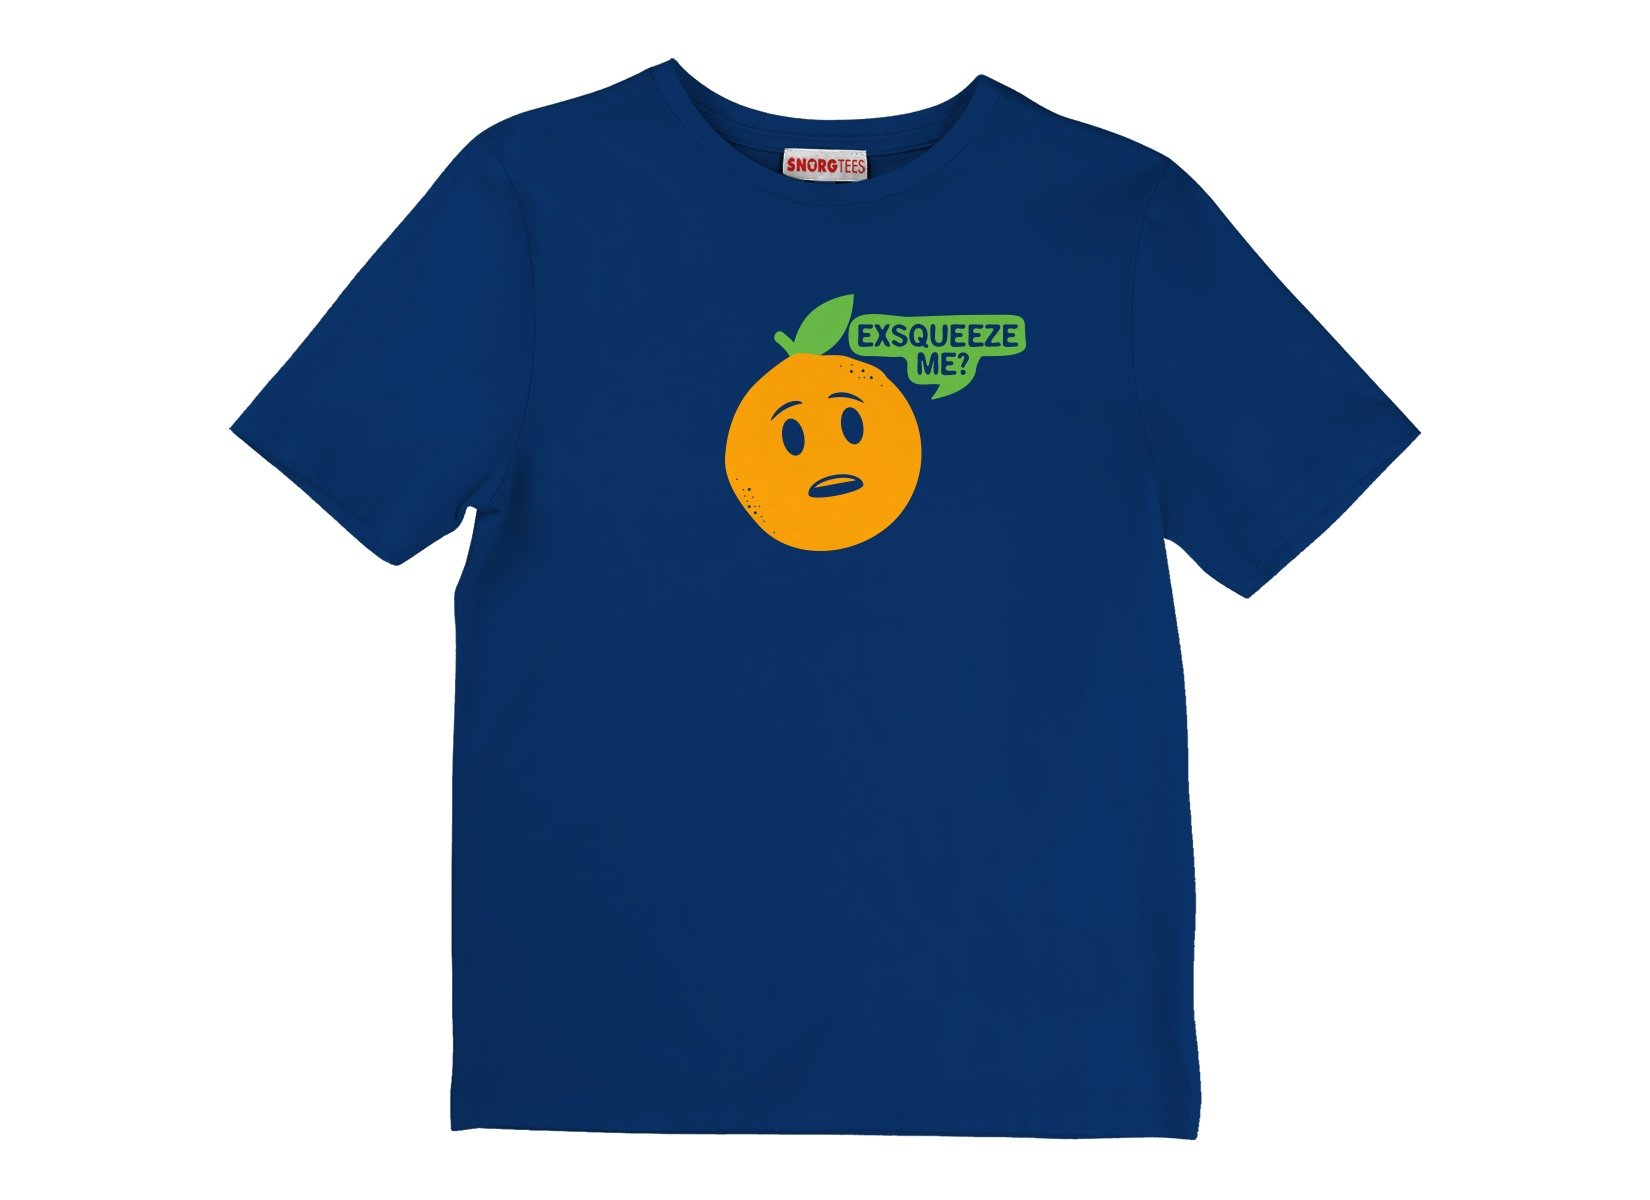 Exsqueeze Me? on Kids T-Shirt